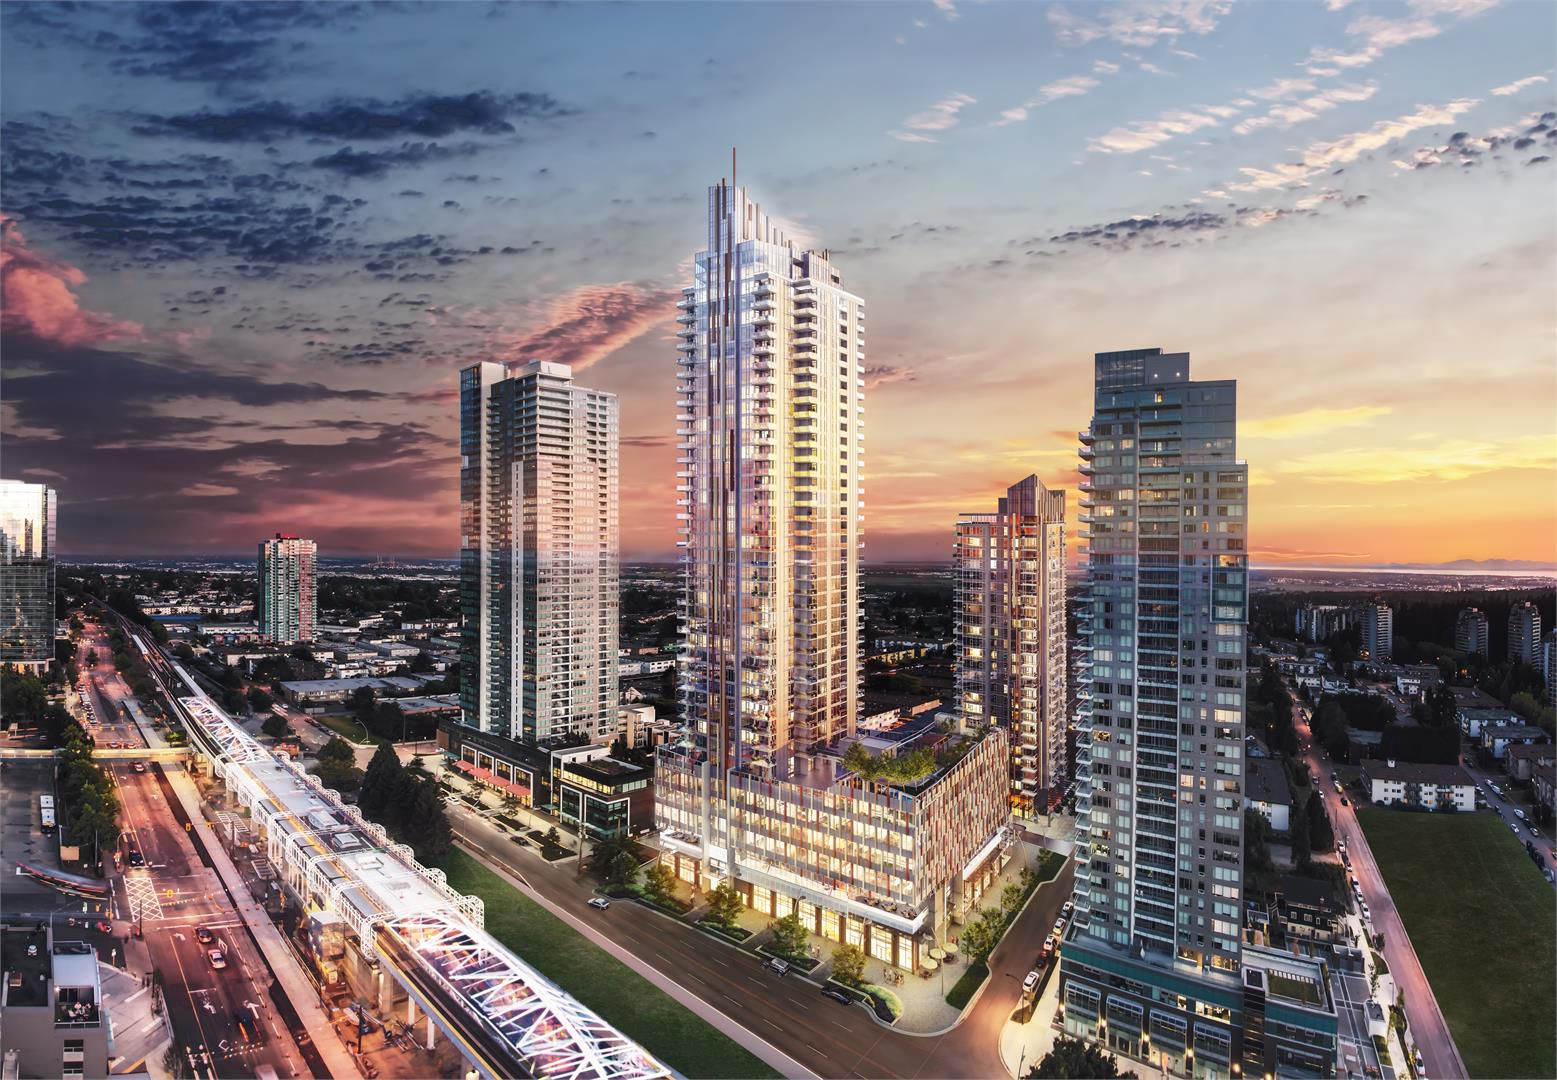 Main Photo: 4670 Assembly Way in Burnaby: Metrotown Condo for sale (Burnaby South)